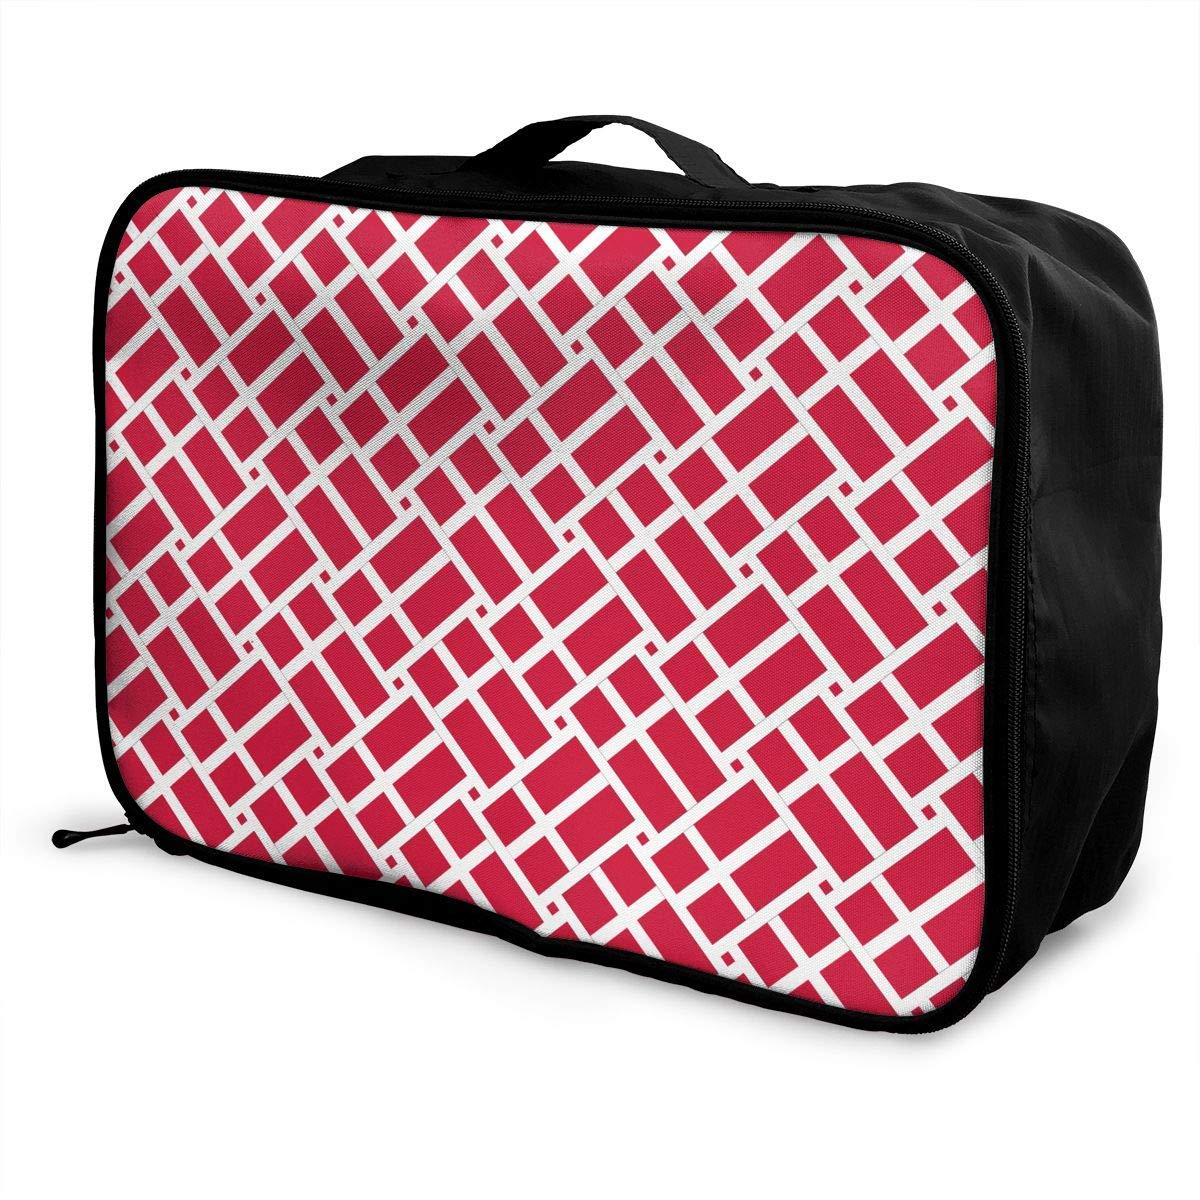 Portable Luggage Duffel Bag Flag Of Denmark Travel Bags Lightweight Overnight Carry-on Tote Duffel In Trolley Handle